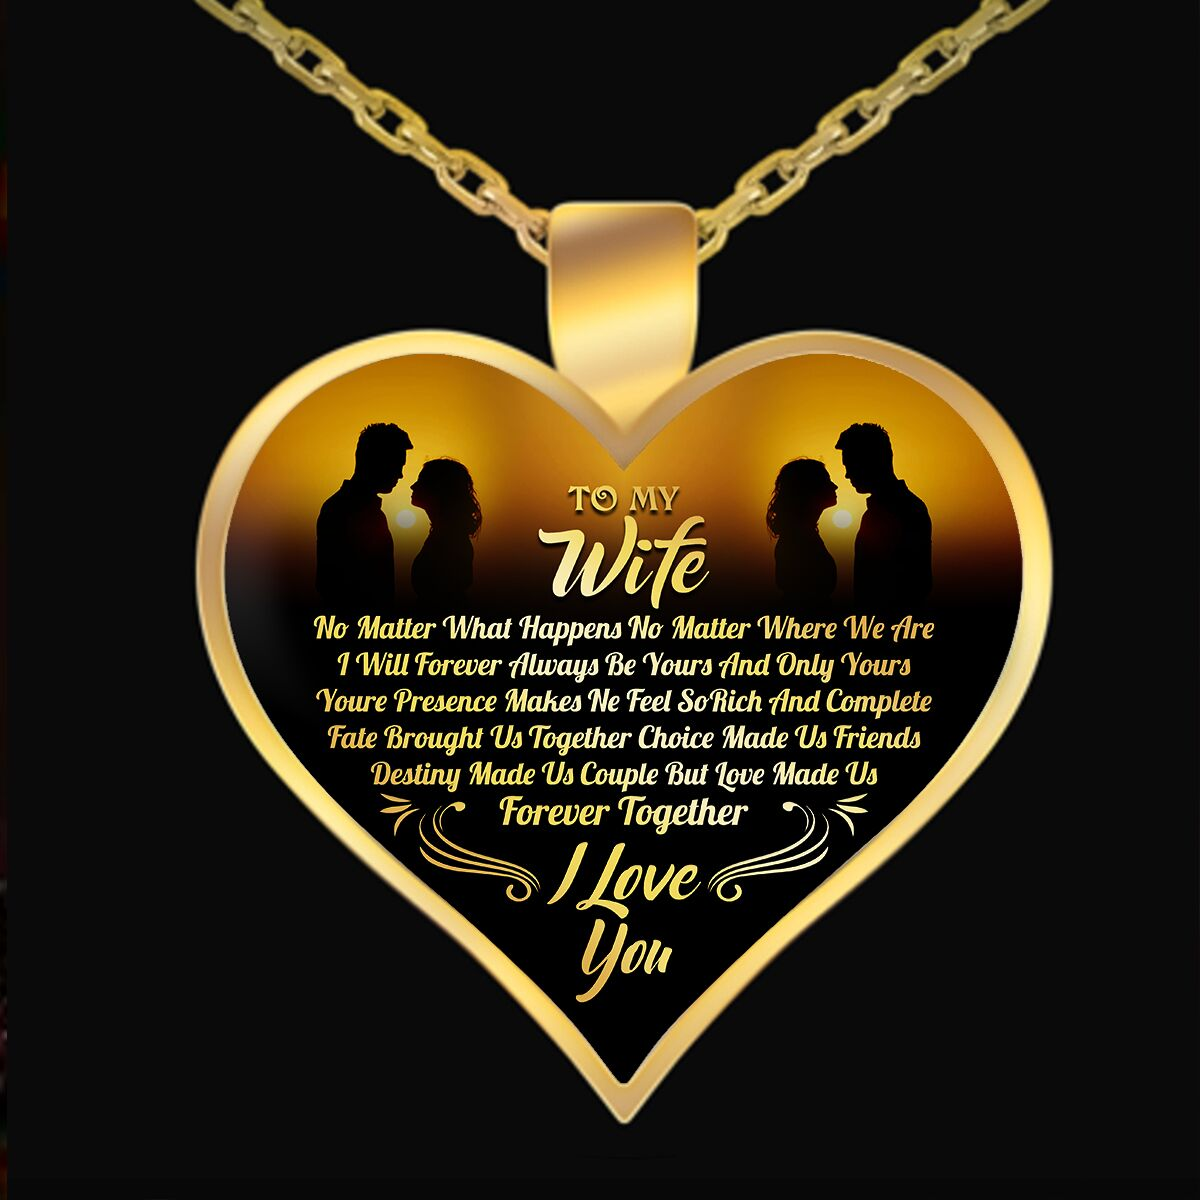 Necklace - TO MY WIFE I LOVE YOU